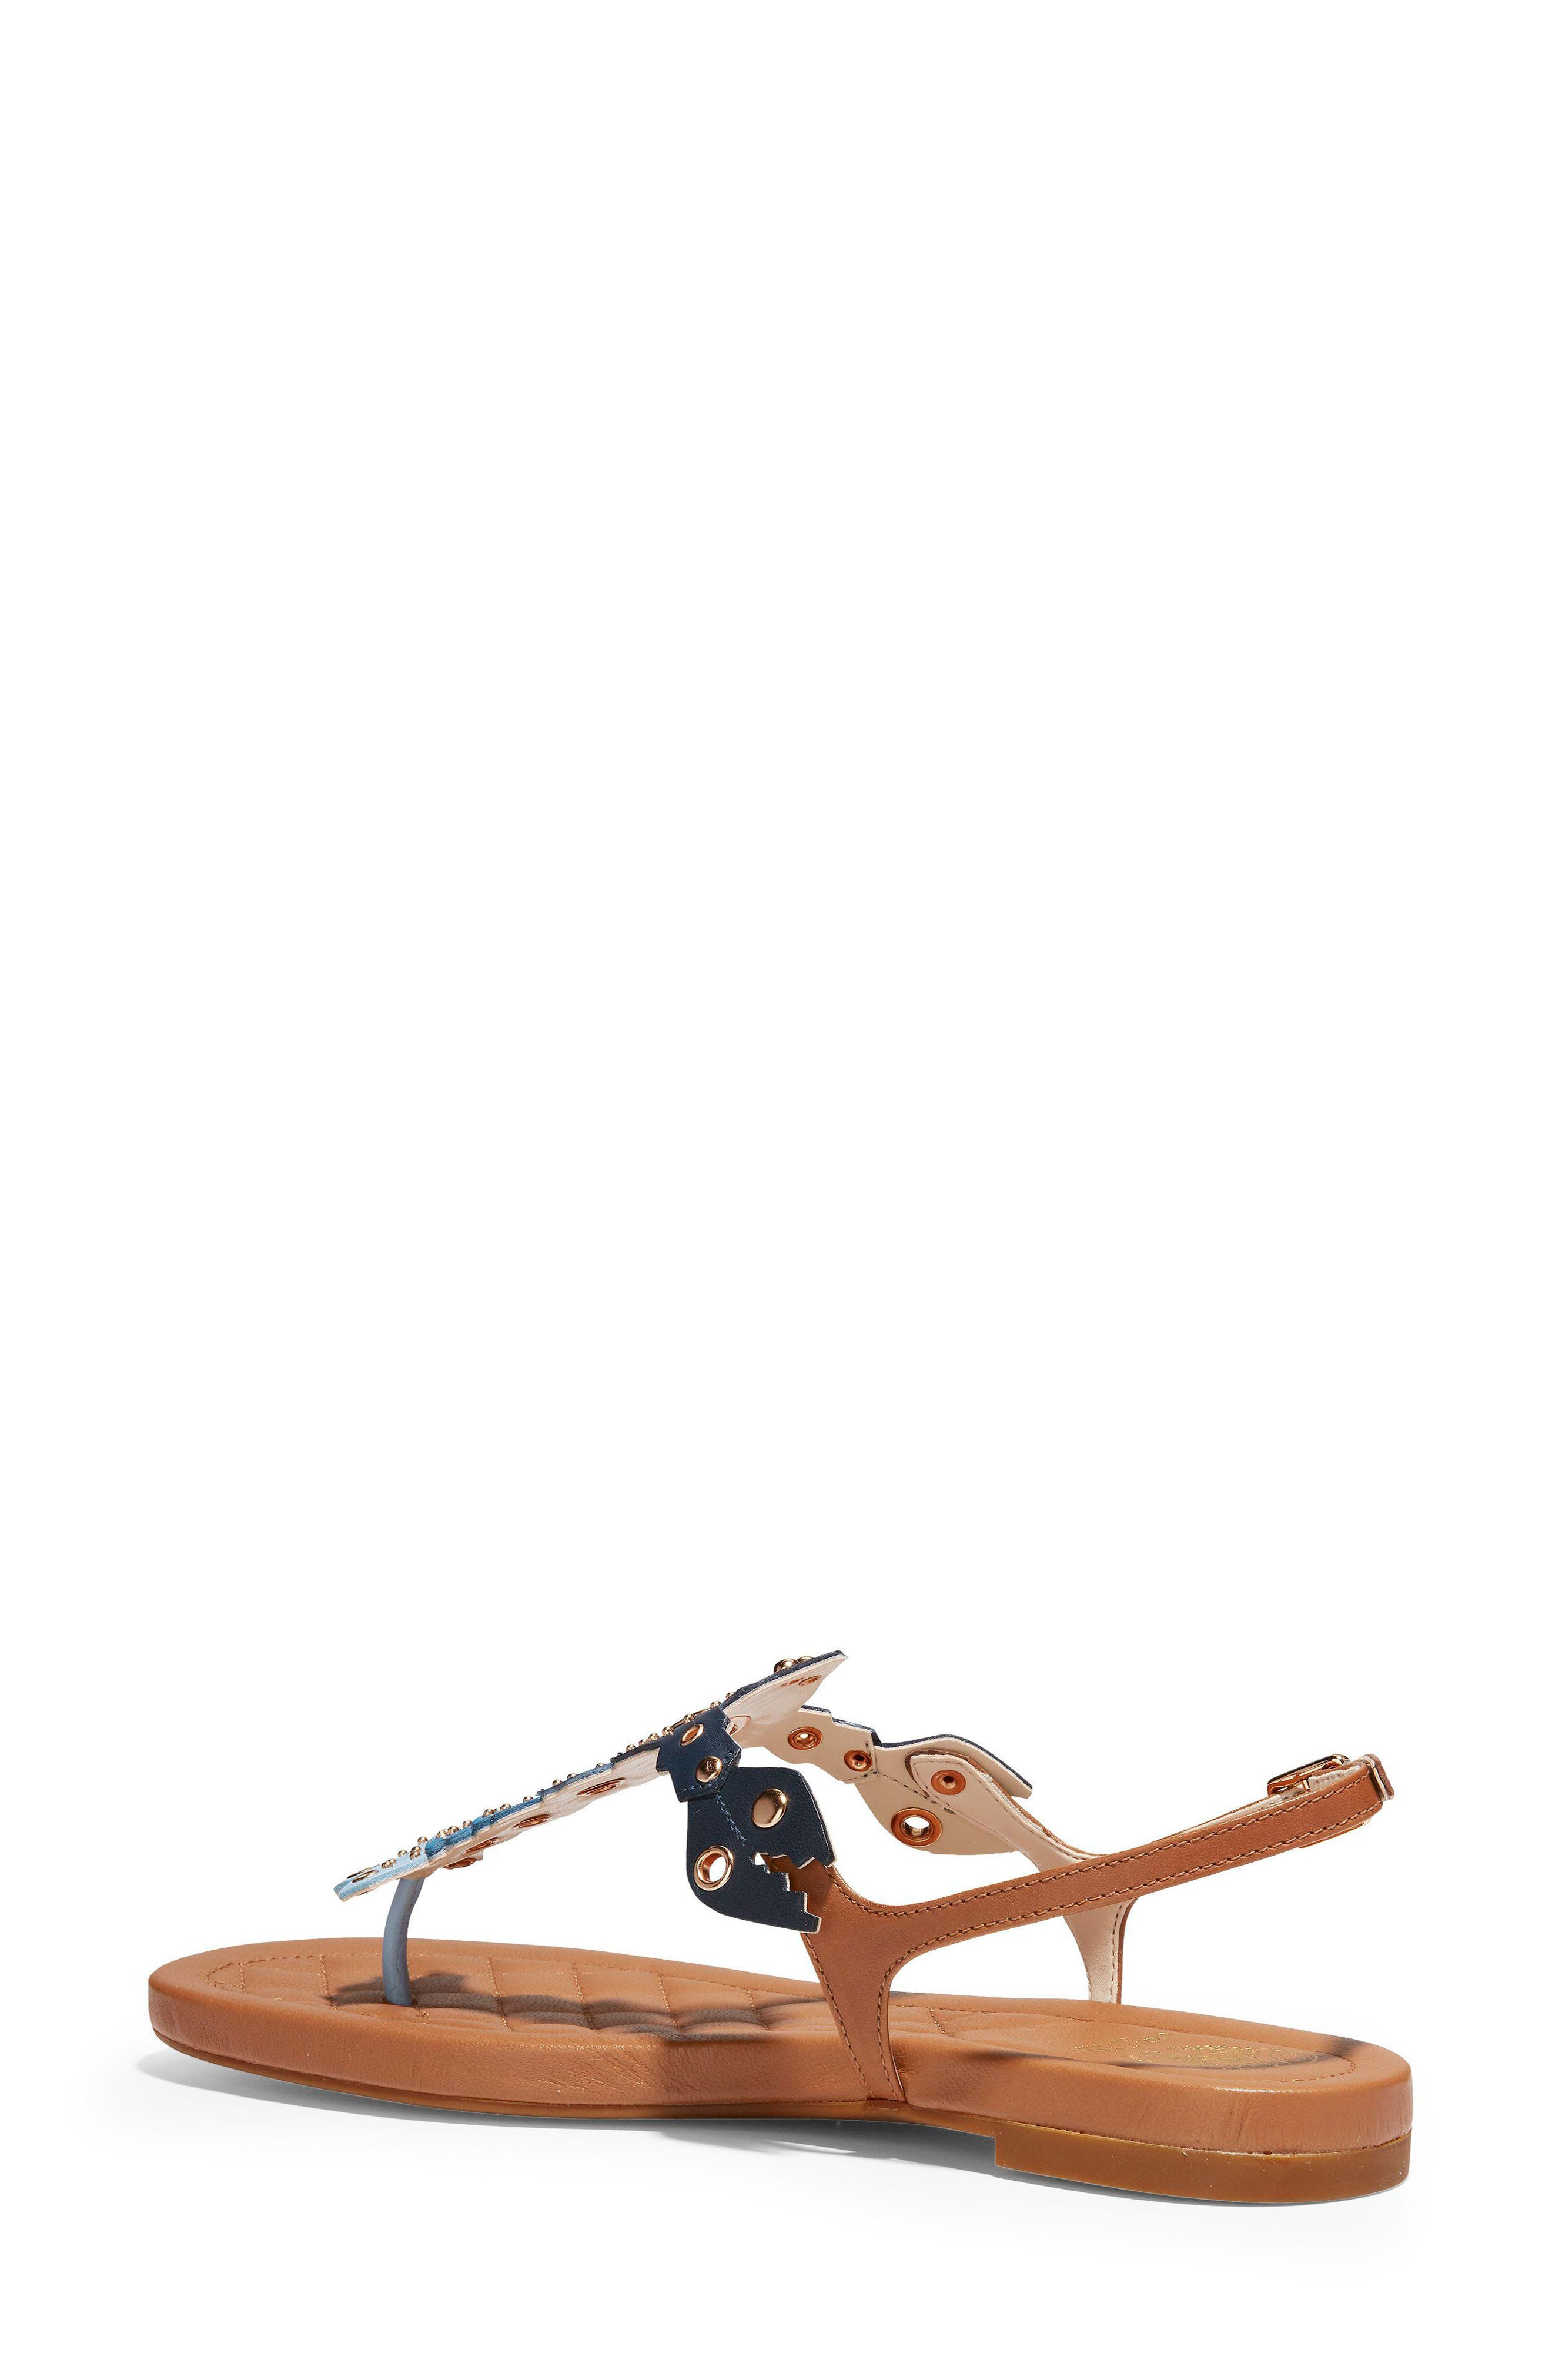 Pinch Lobster Sandal,                             Alternate thumbnail 2, color,                             NAVY MULTI LEATHER